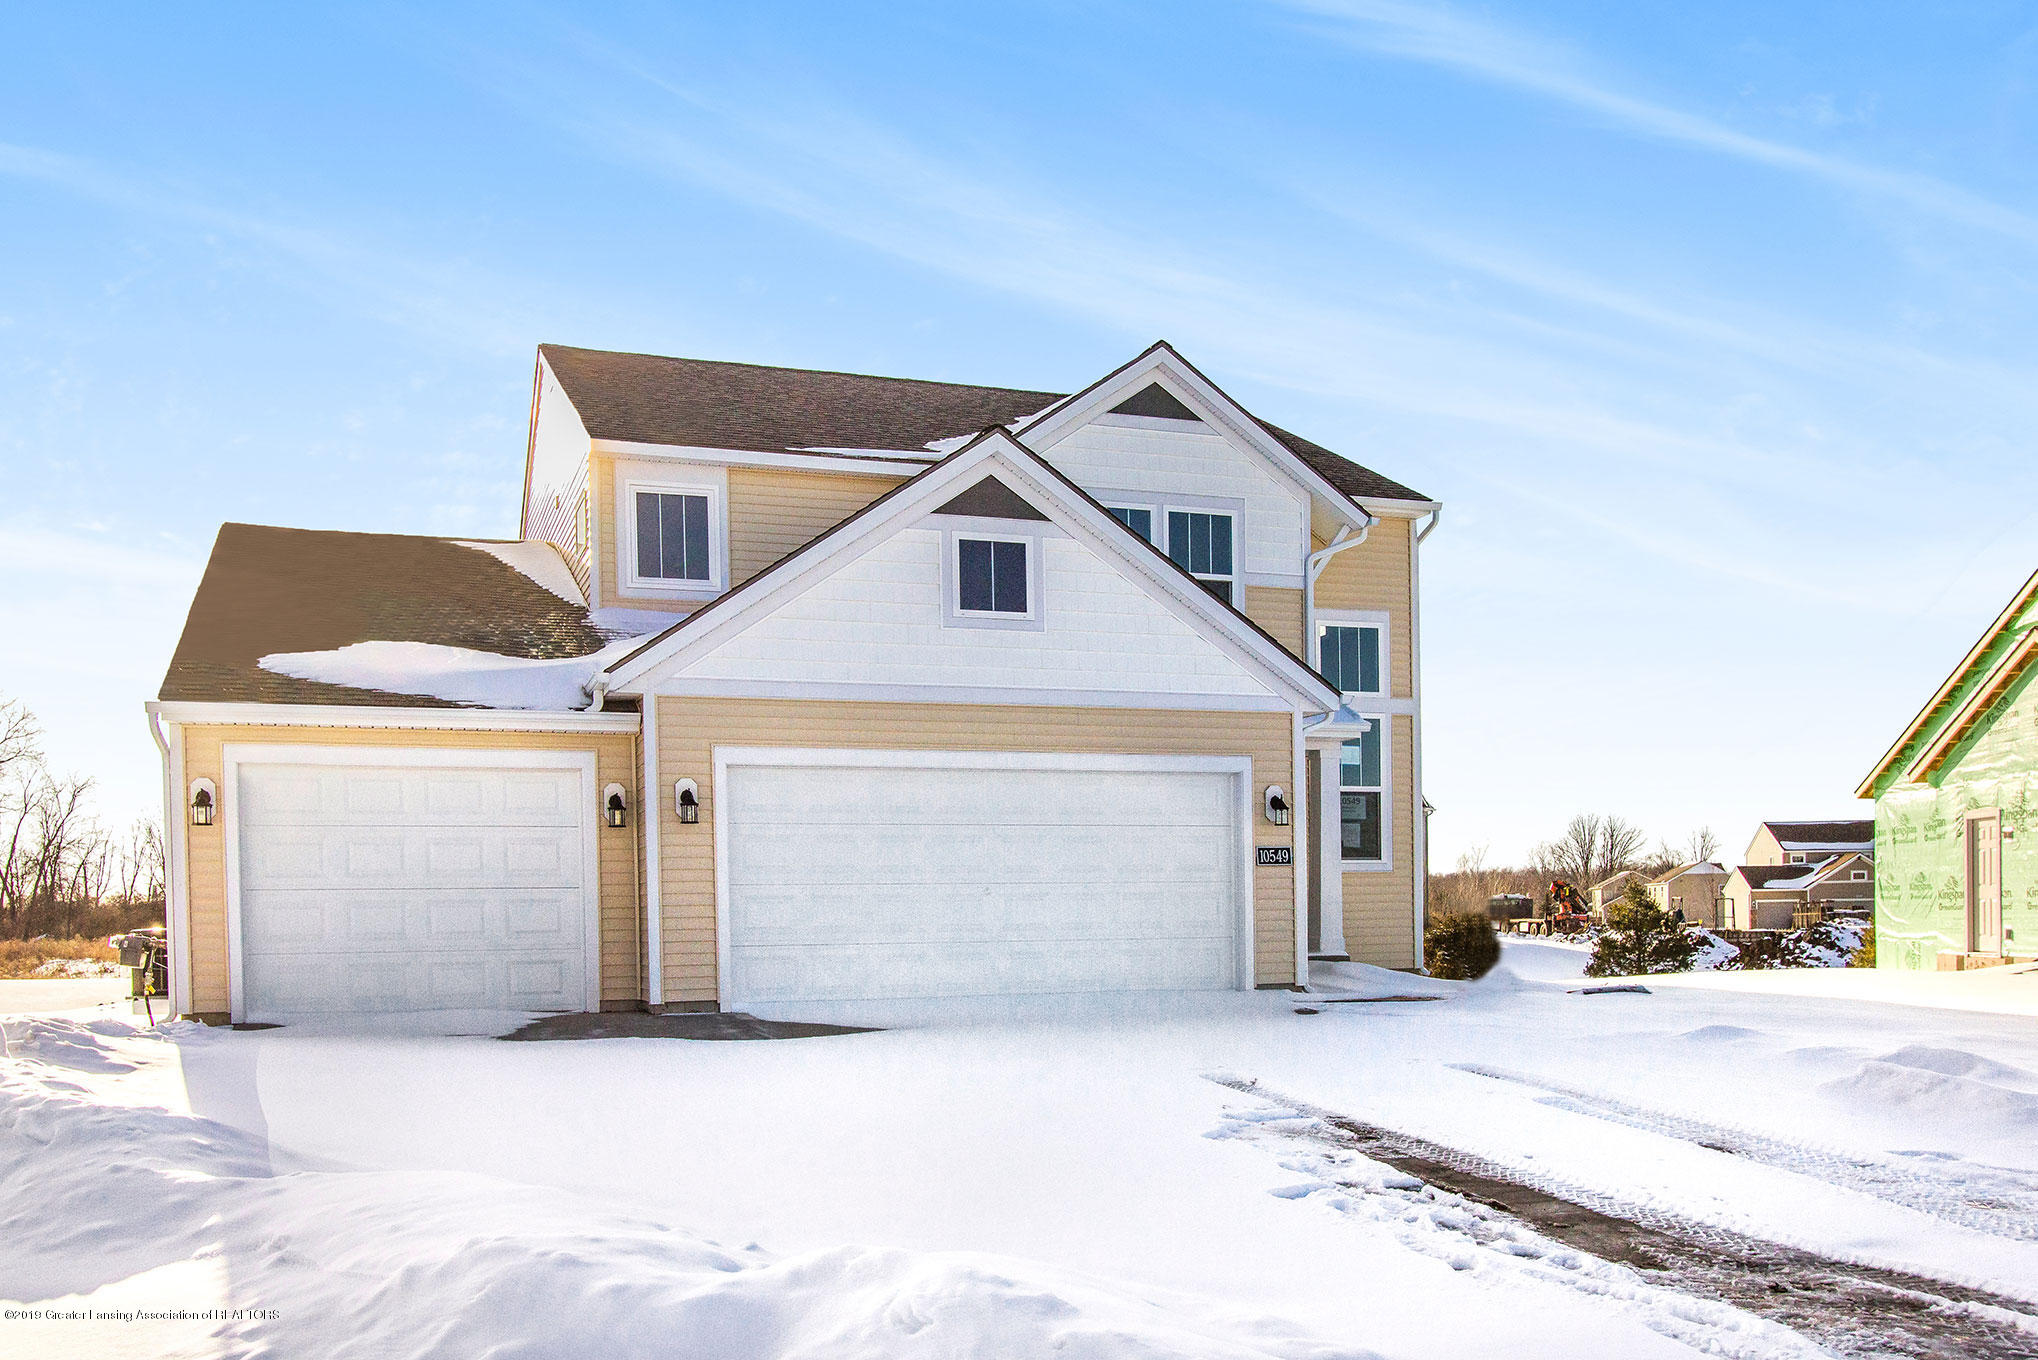 10549 Saddlebrook Dr - 10549 Saddlebrook Drive Grand Ledge, MI - 2